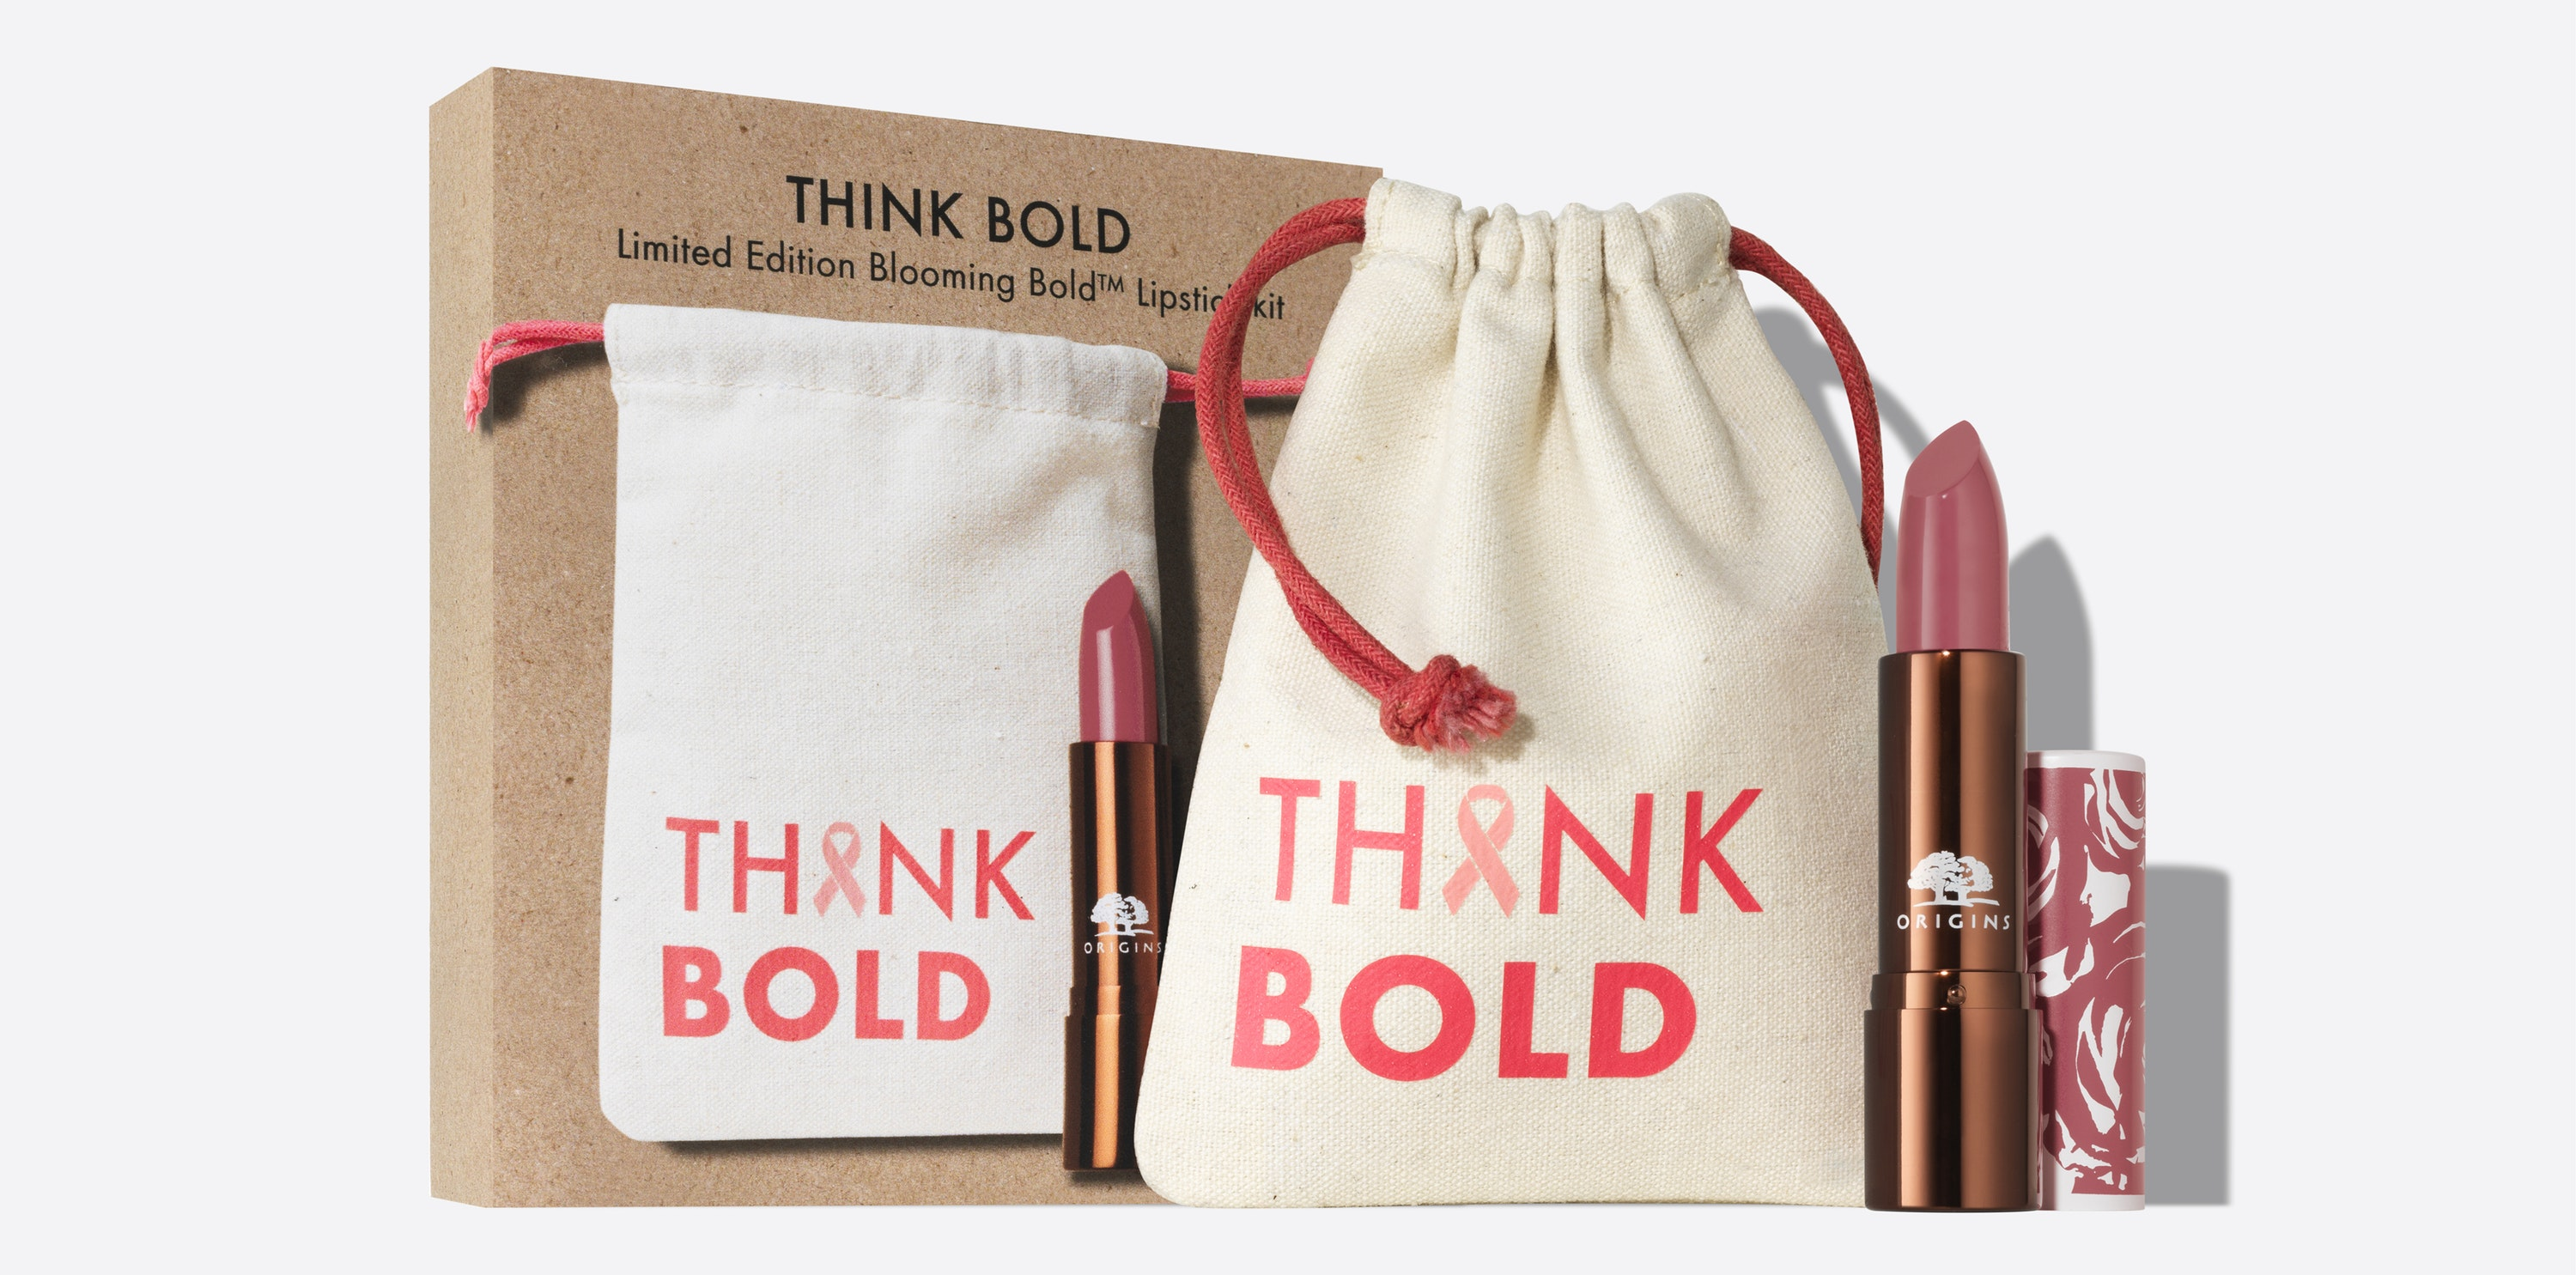 Origins Think Bold Limited Edition Blooming Bold Lipstick Kit